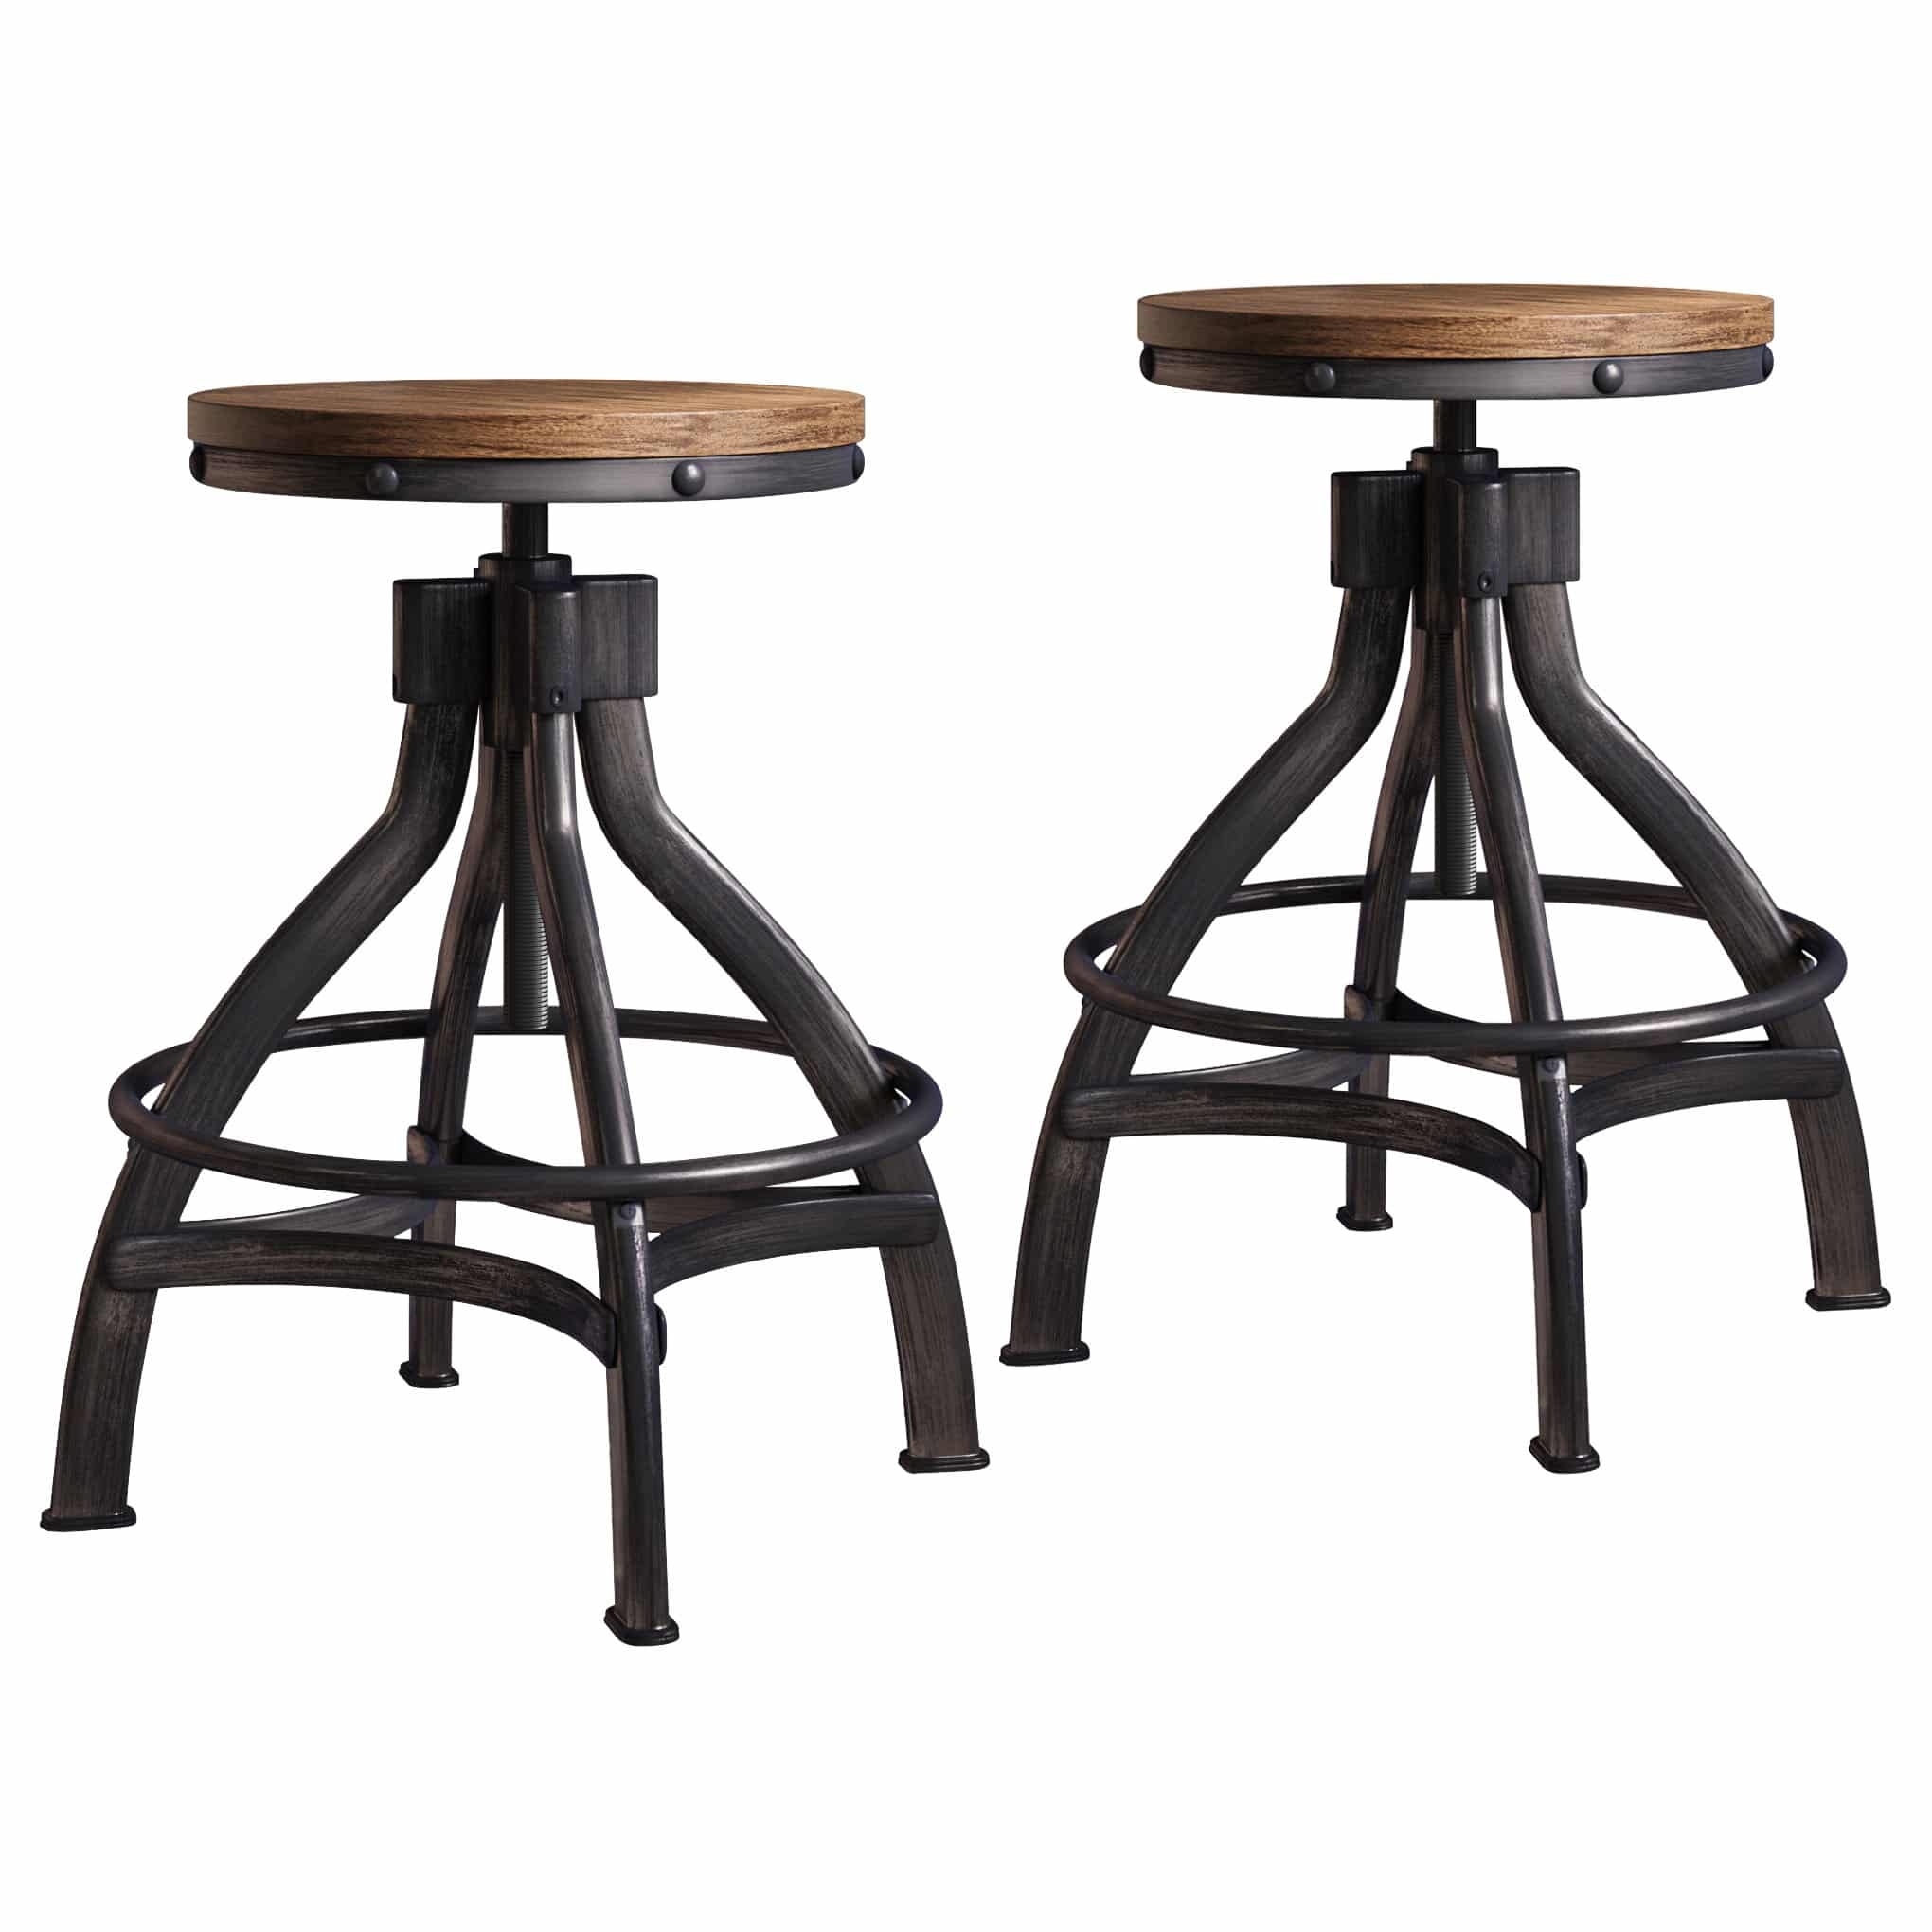 kitchen-decor-bar-stools